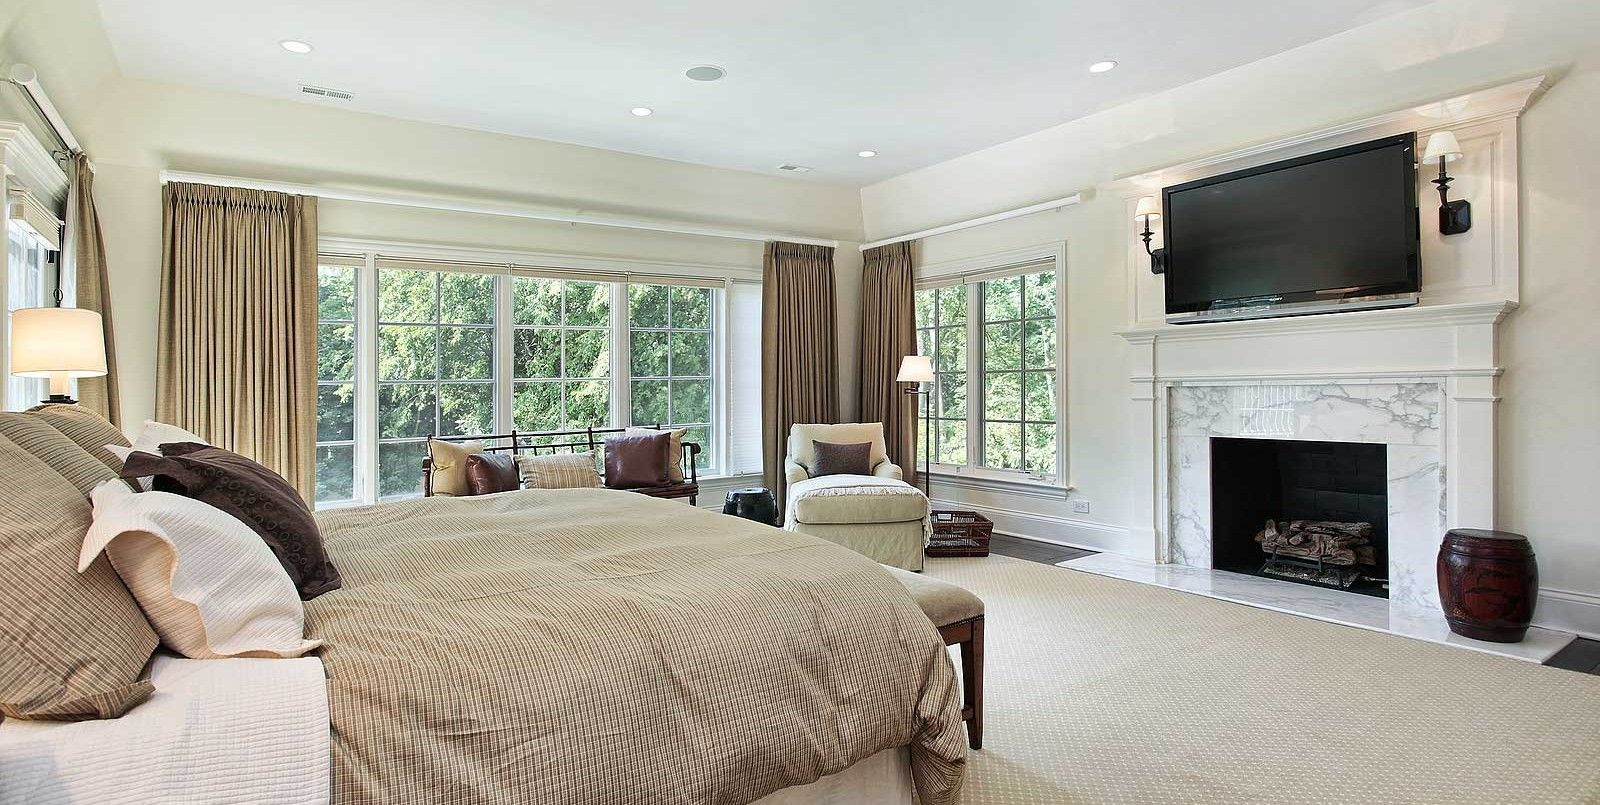 charming fireplace master bedroom decorating ideas | fireplace in master bedroom - yes giant tv - no | sleep ...